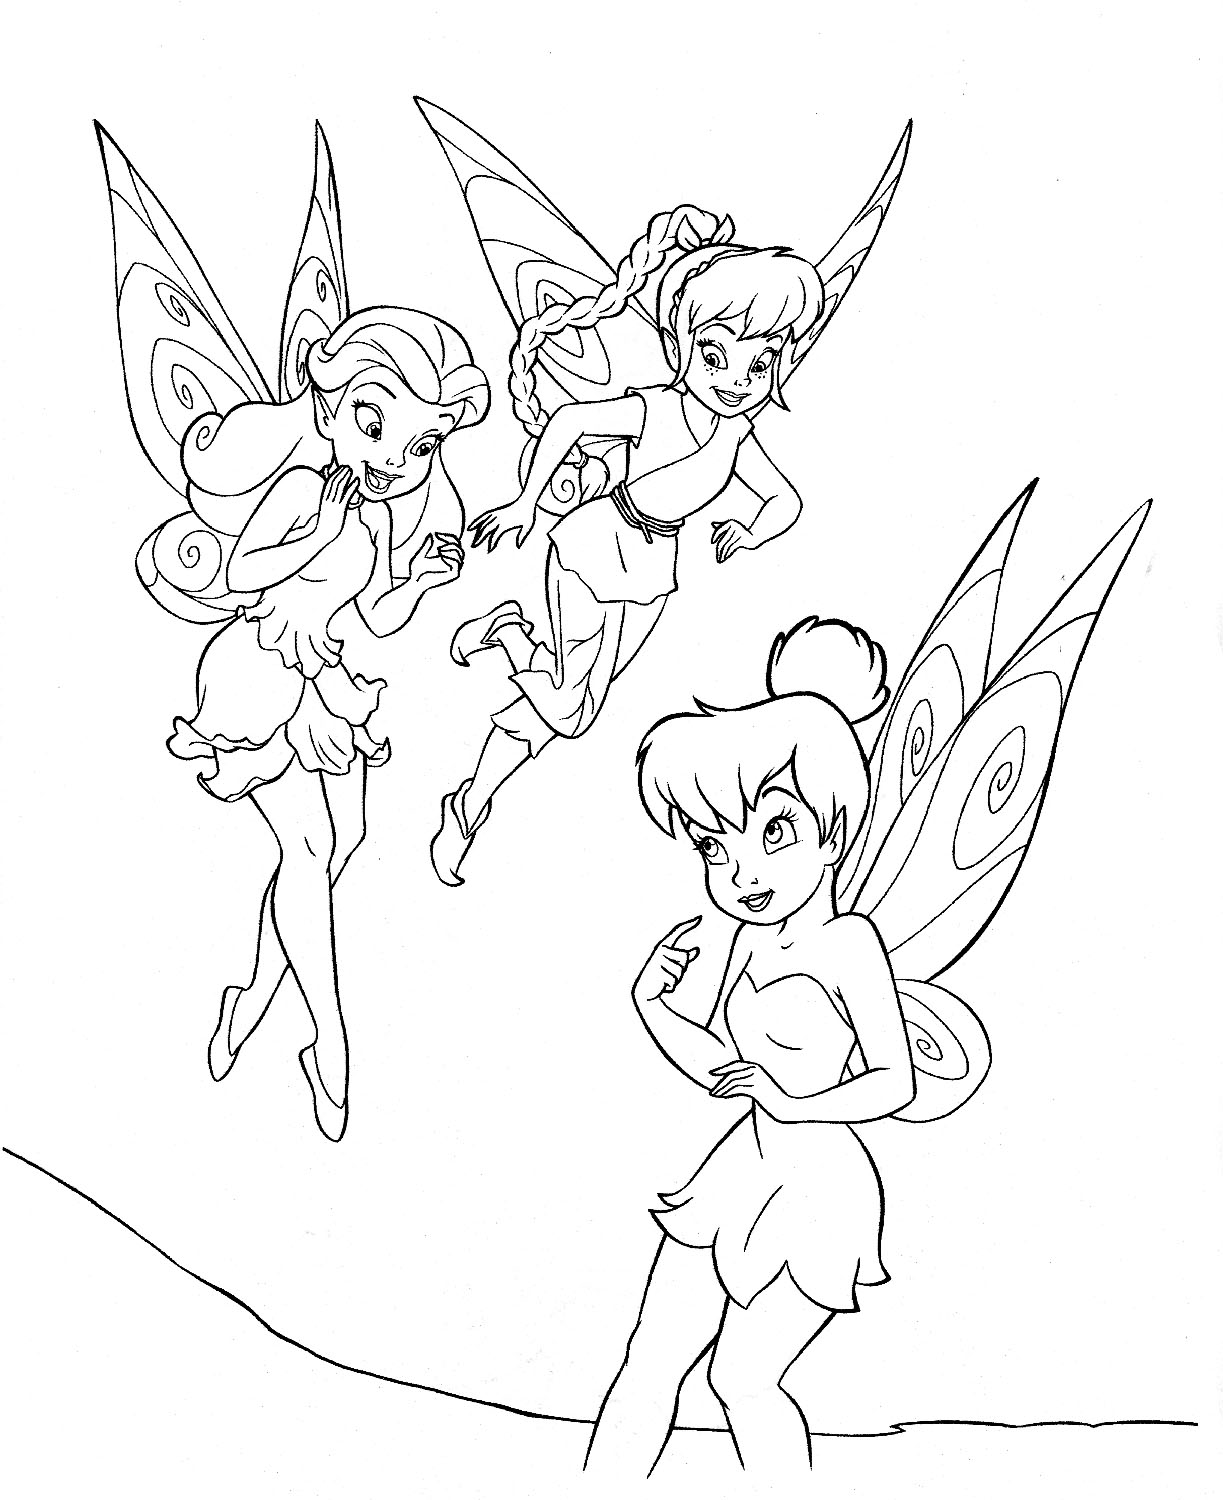 tinkerbell coloring pages kids - photo#13